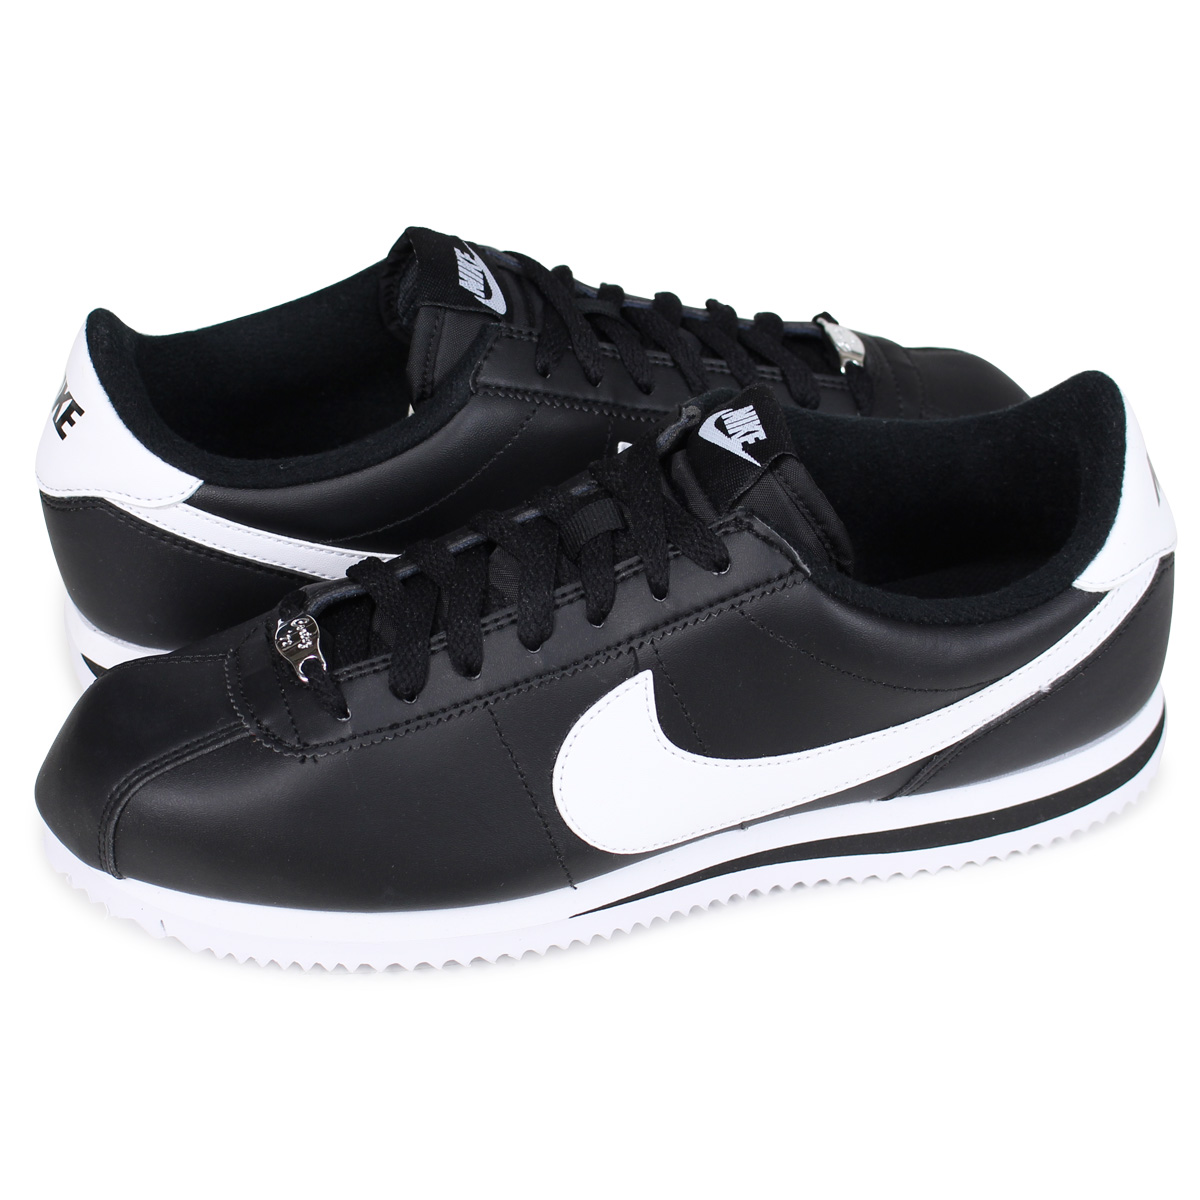 check out 066cd d1764 NIKE Nike Cortez sneakers CORTEZ BASIC LEATHER 819719-012 mens shoes black  ...